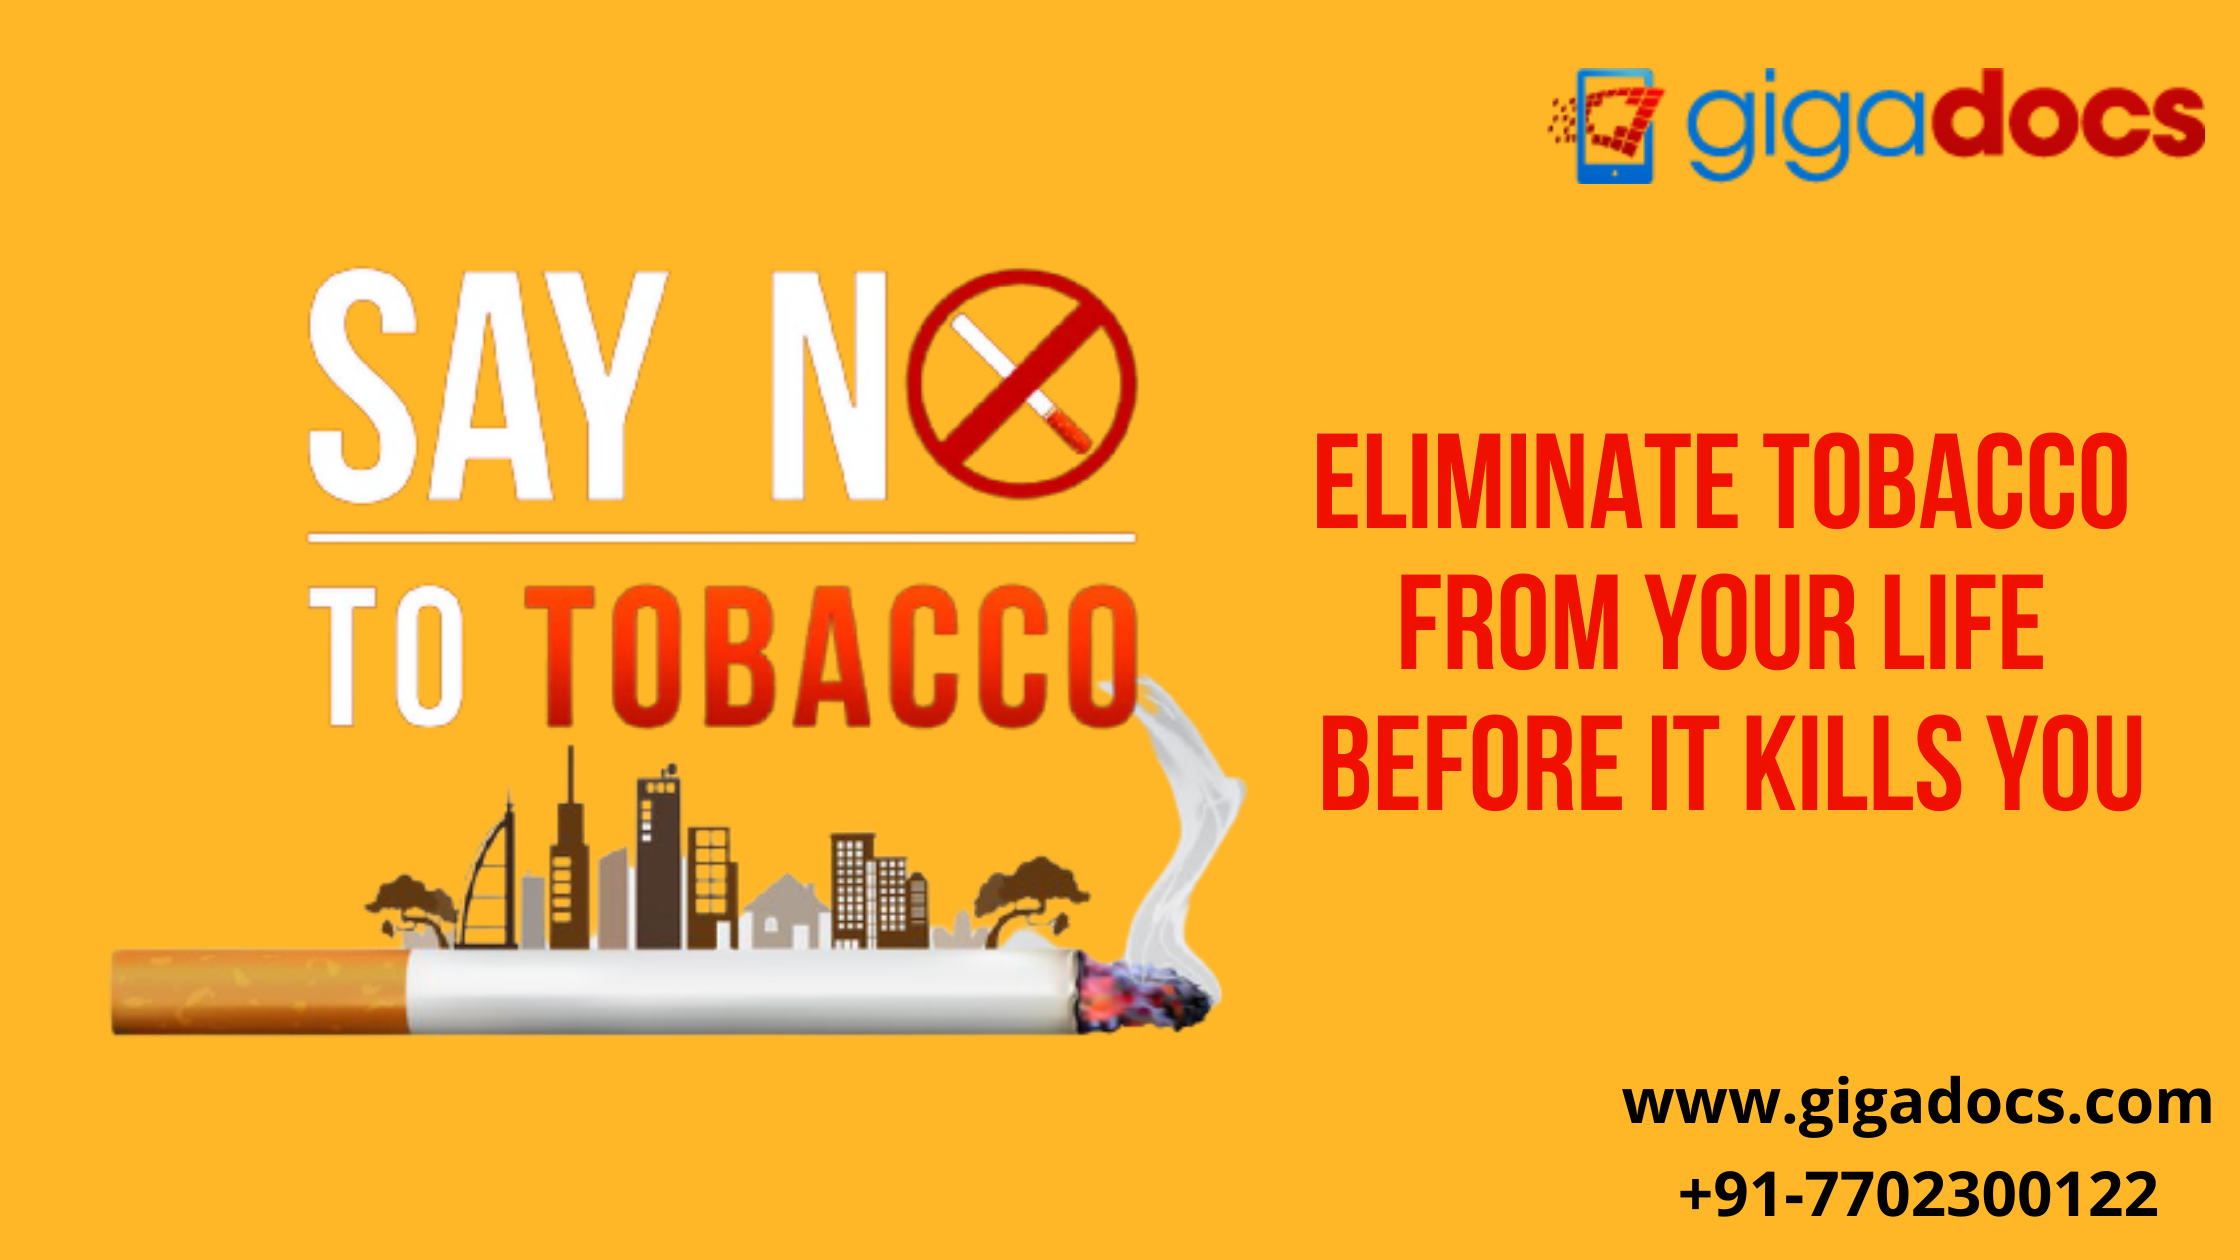 No Smoking Day- Quit Smoking to Win over the Covid Pandemic